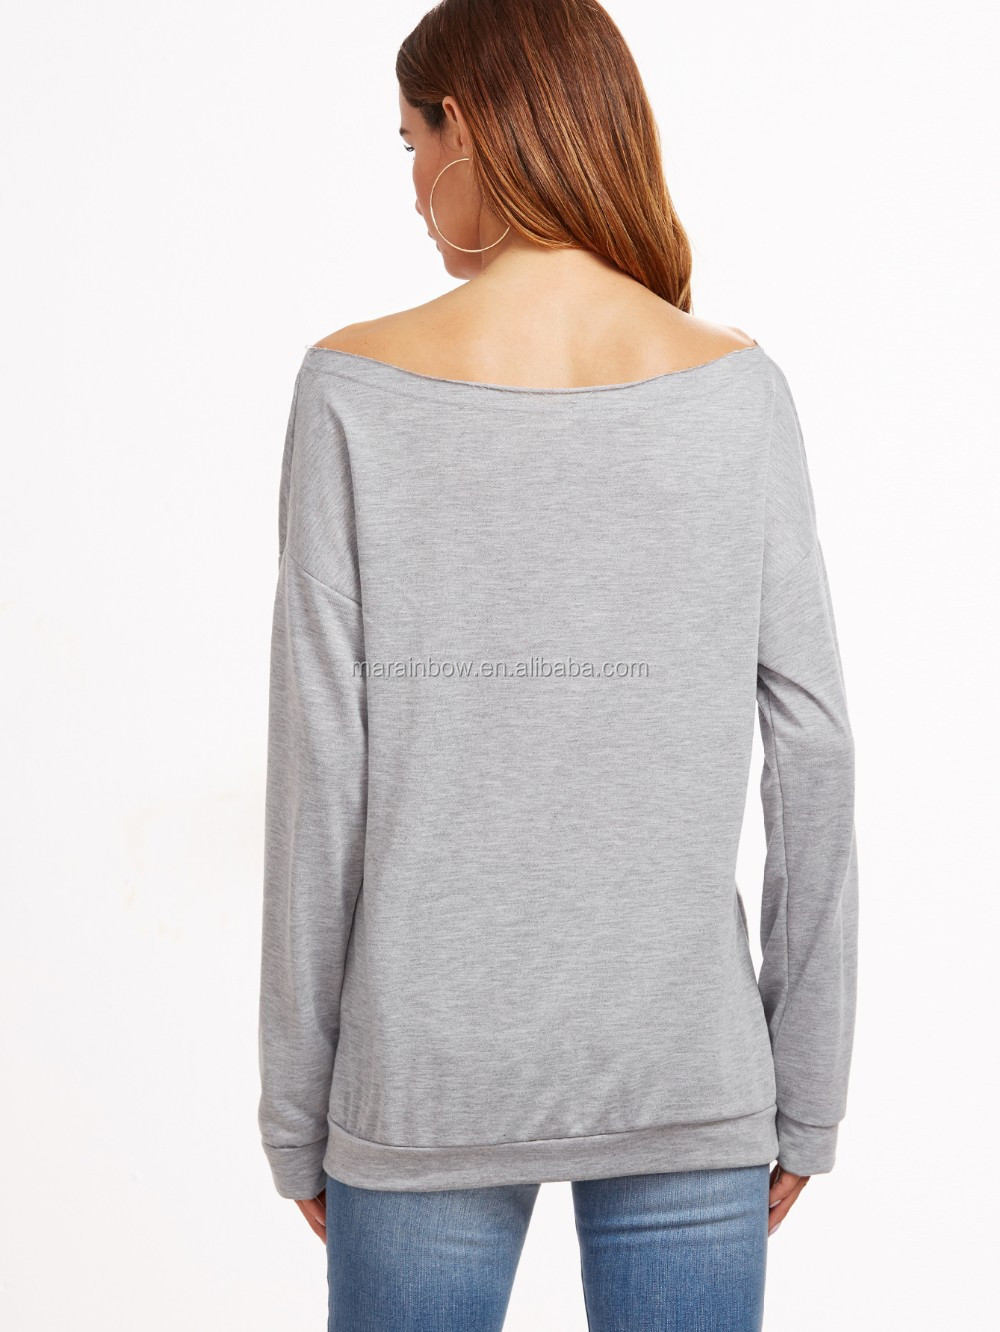 Lightweight Cotton Grey Boat Neck Drop Shoulder Letter Print Sweatshirt Sexy Womens Off the Shoulder Sweatshirt OEM